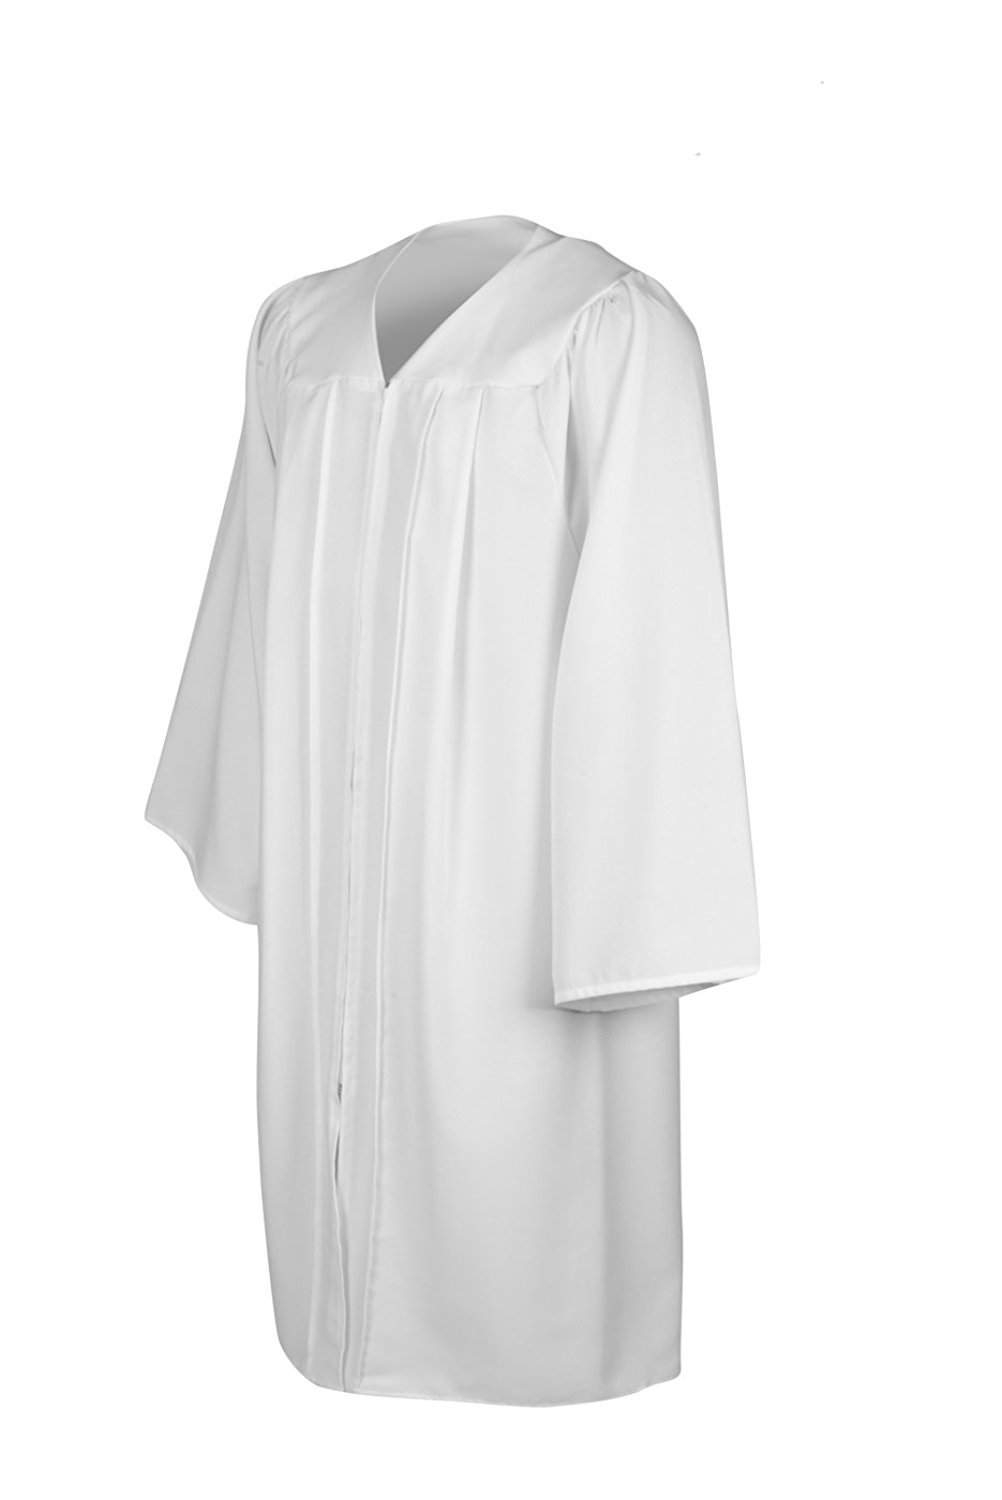 Leishungao Senior Classic Choir Robes Confirmation Robe White for Baptisms Height 6'3''-6'5''FF